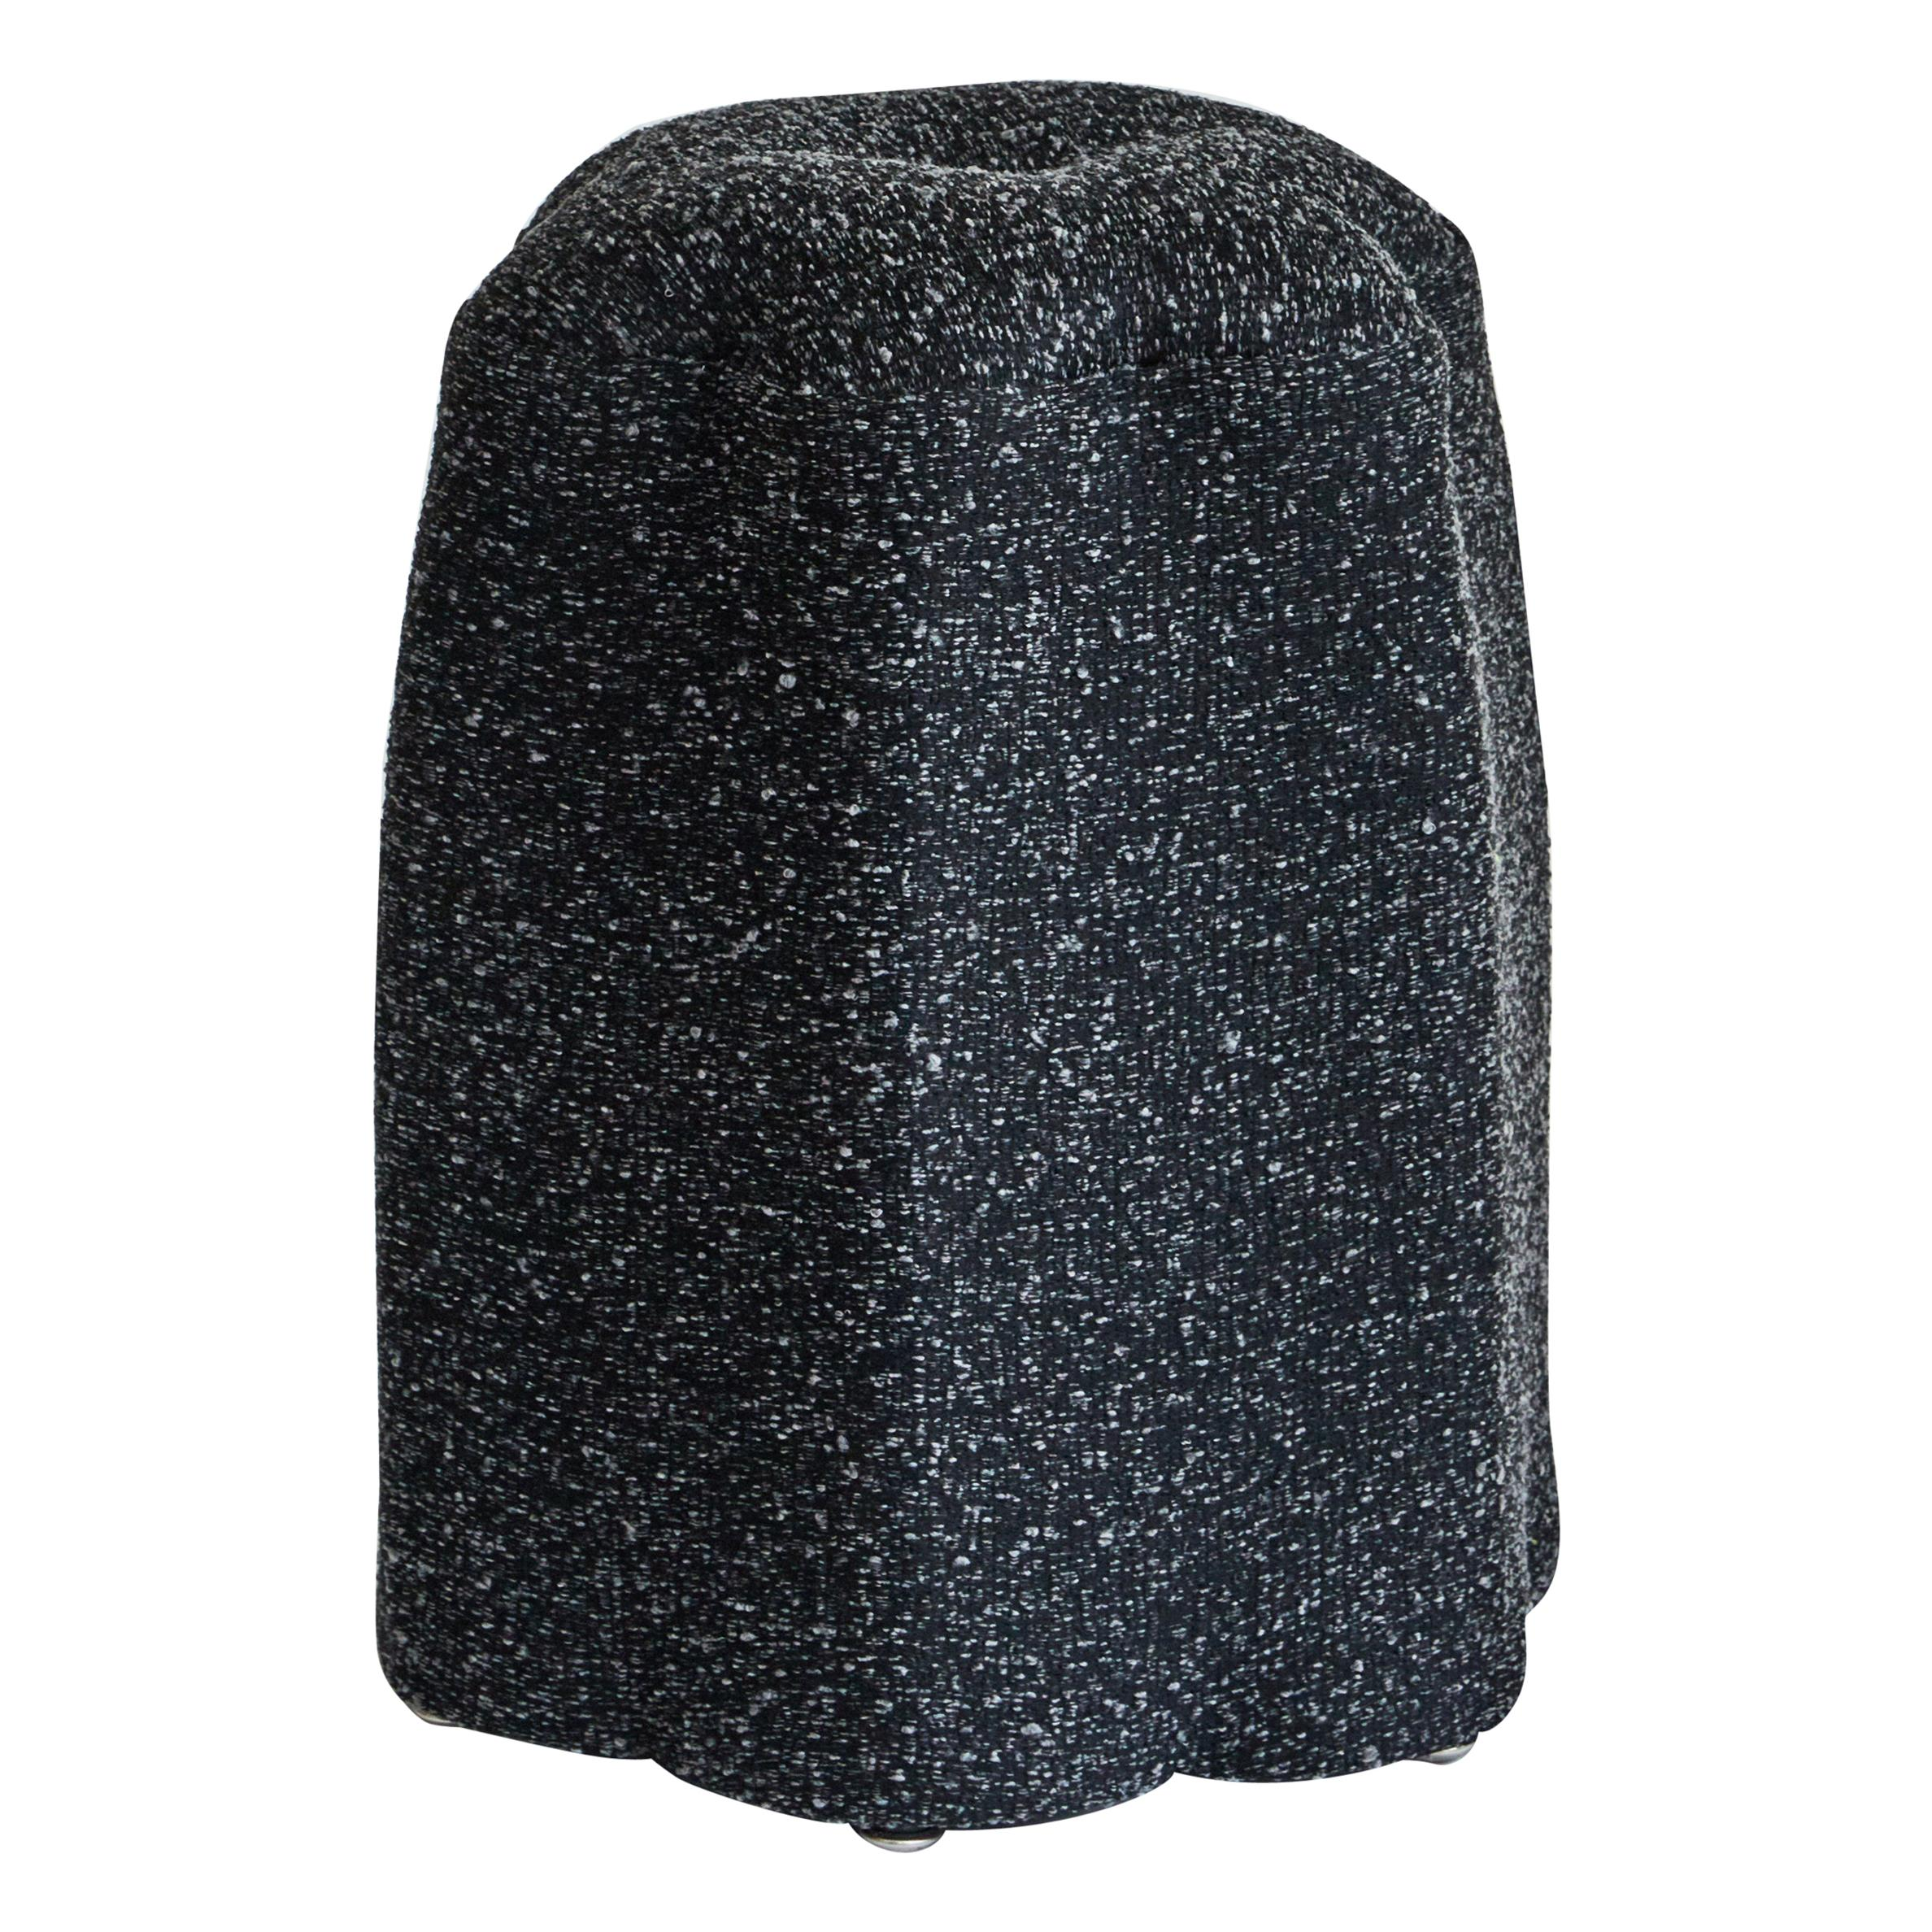 Lily Stool, Charcoal Bouclé Stool by Christian Siriano